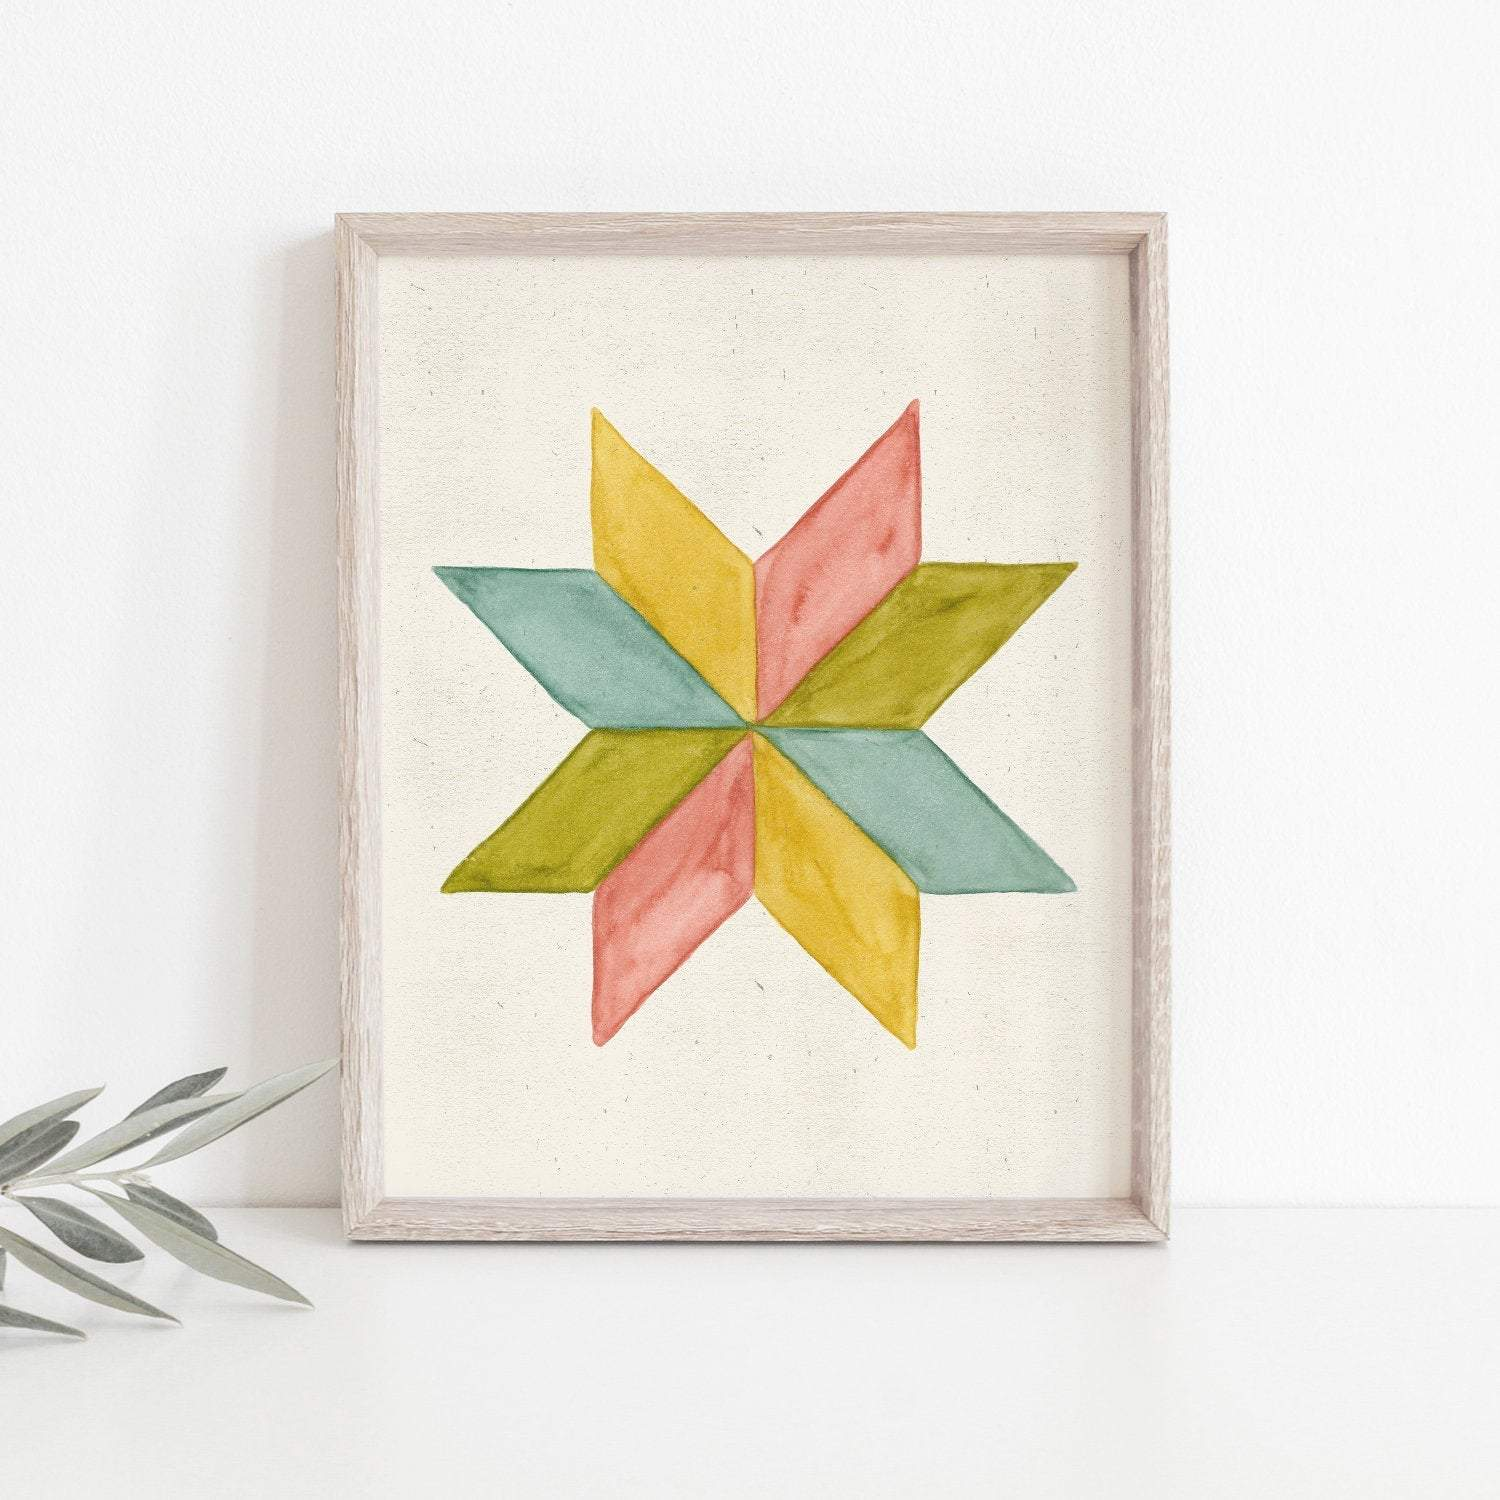 Pinwheel Quilt Block Wall Art Print - Multicolor | Geometric Wall Art | Spring Art Print | Watercolor Art Print | Minimalist Art | 5x7 8x10